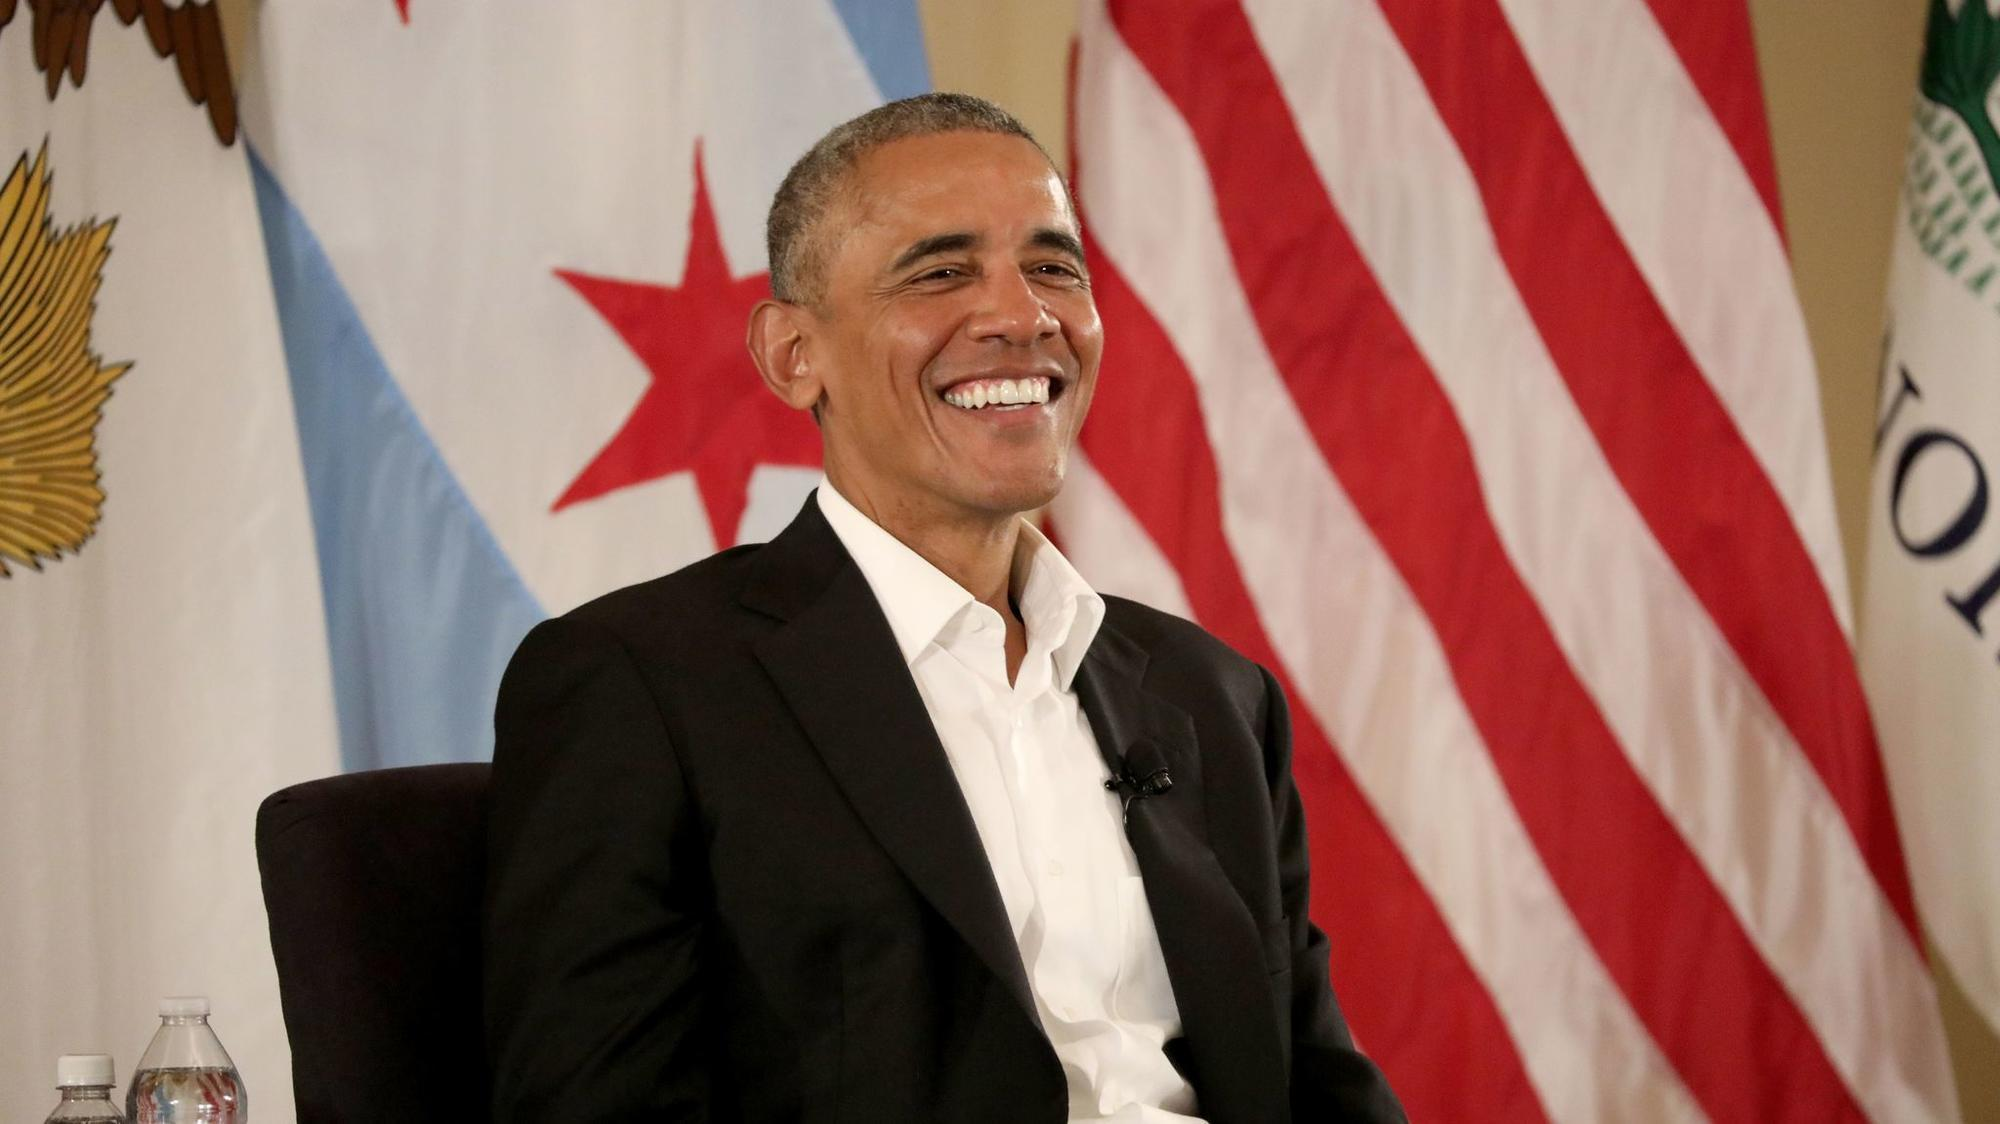 Former President Obama called to jury duty in Cook County and plans to serve